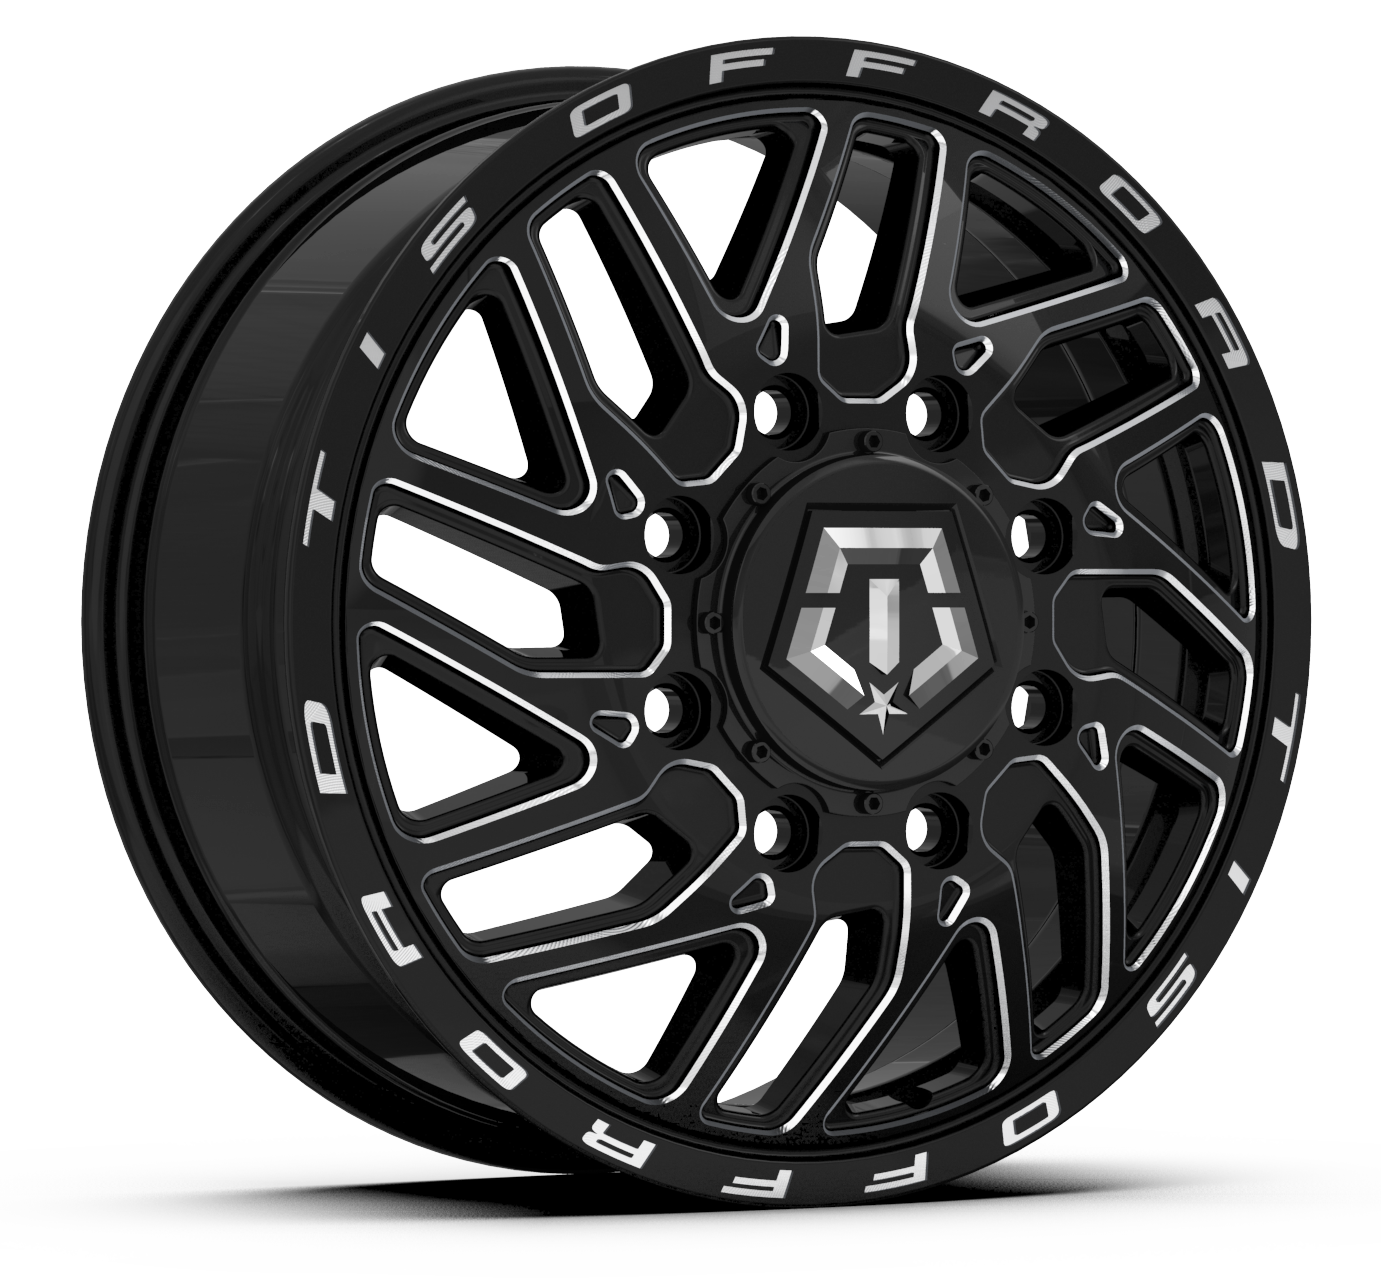 TIS 544BM Dually Wheels Gloss Black with CNC Milled Accents 5 and 6 lug